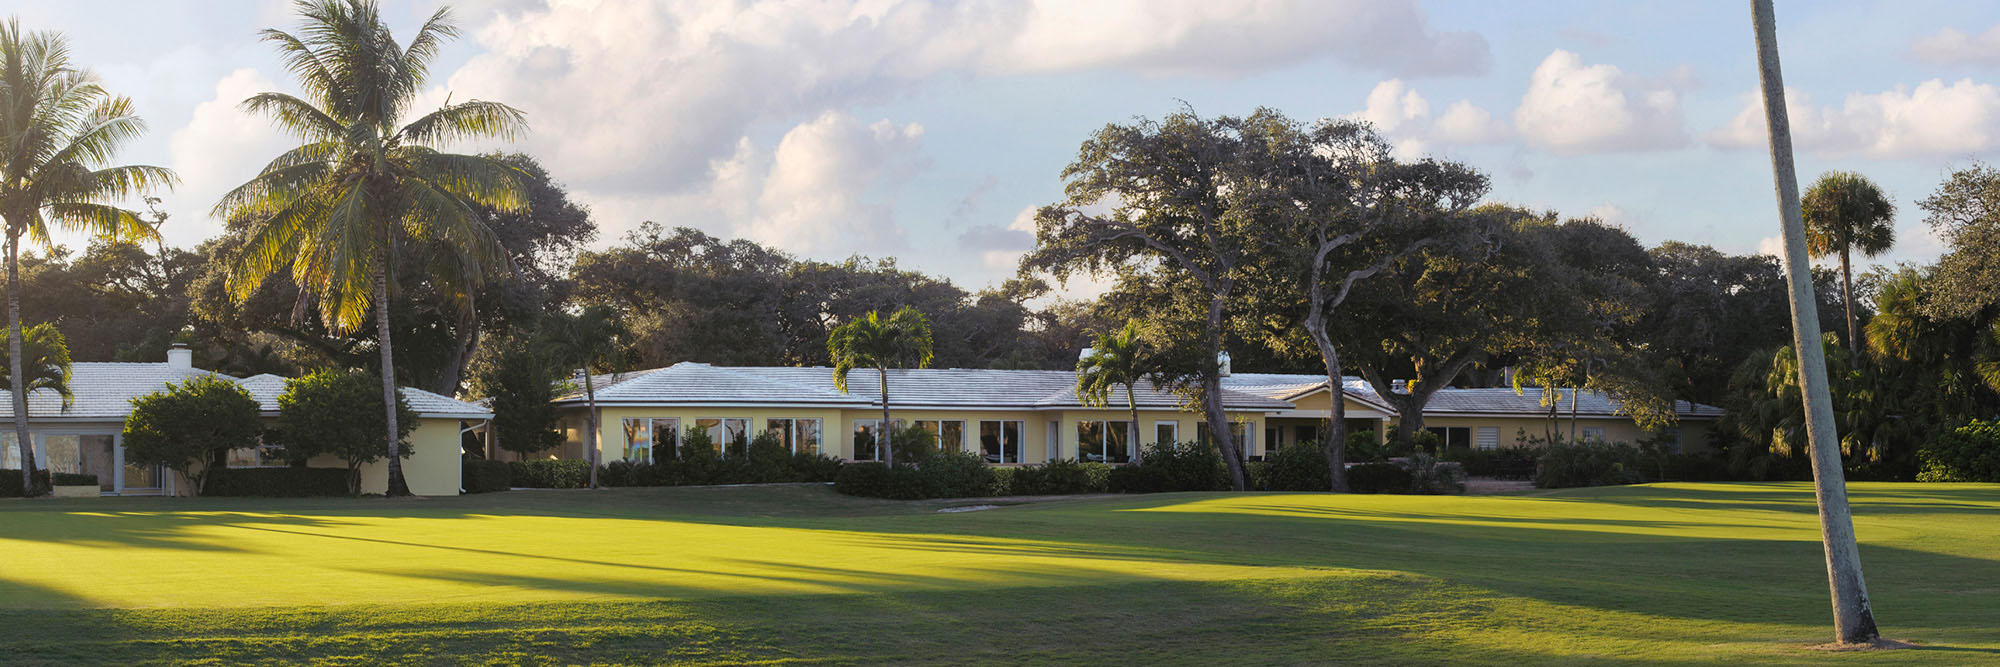 Golf Course Image - Riomar Clubhouse